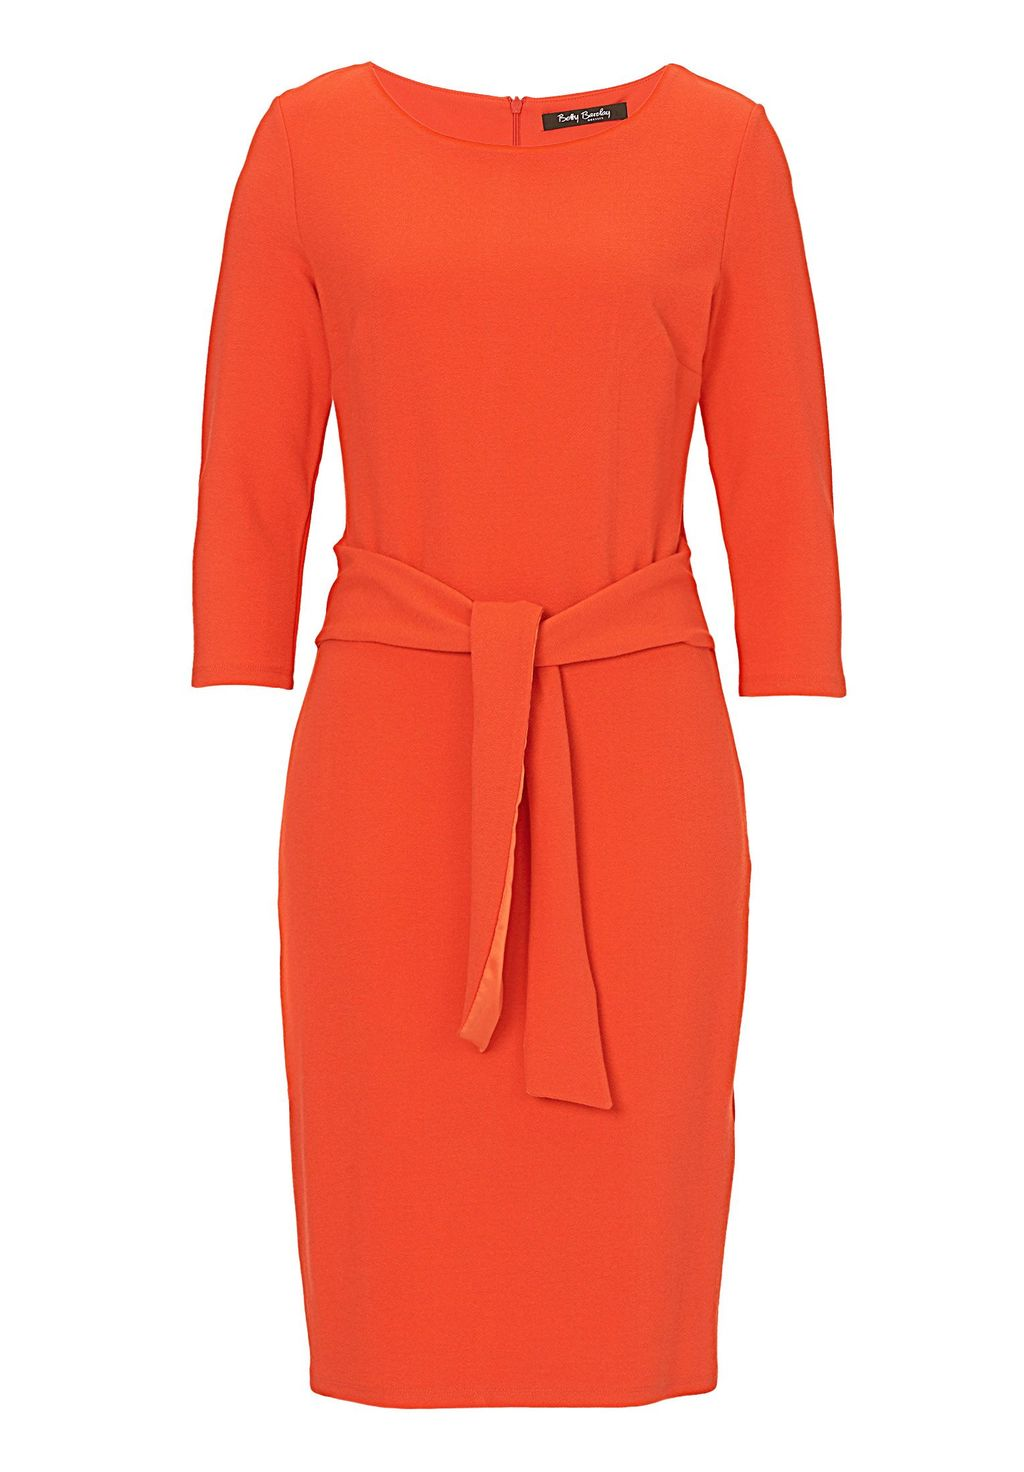 Textured Jersey Dress, Orange - style: shift; neckline: round neck; fit: tailored/fitted; pattern: plain; hip detail: draws attention to hips; waist detail: belted waist/tie at waist/drawstring; predominant colour: bright orange; occasions: evening, creative work; length: just above the knee; fibres: polyester/polyamide - 100%; sleeve length: 3/4 length; sleeve style: standard; texture group: crepes; pattern type: fabric; season: s/s 2016; wardrobe: highlight